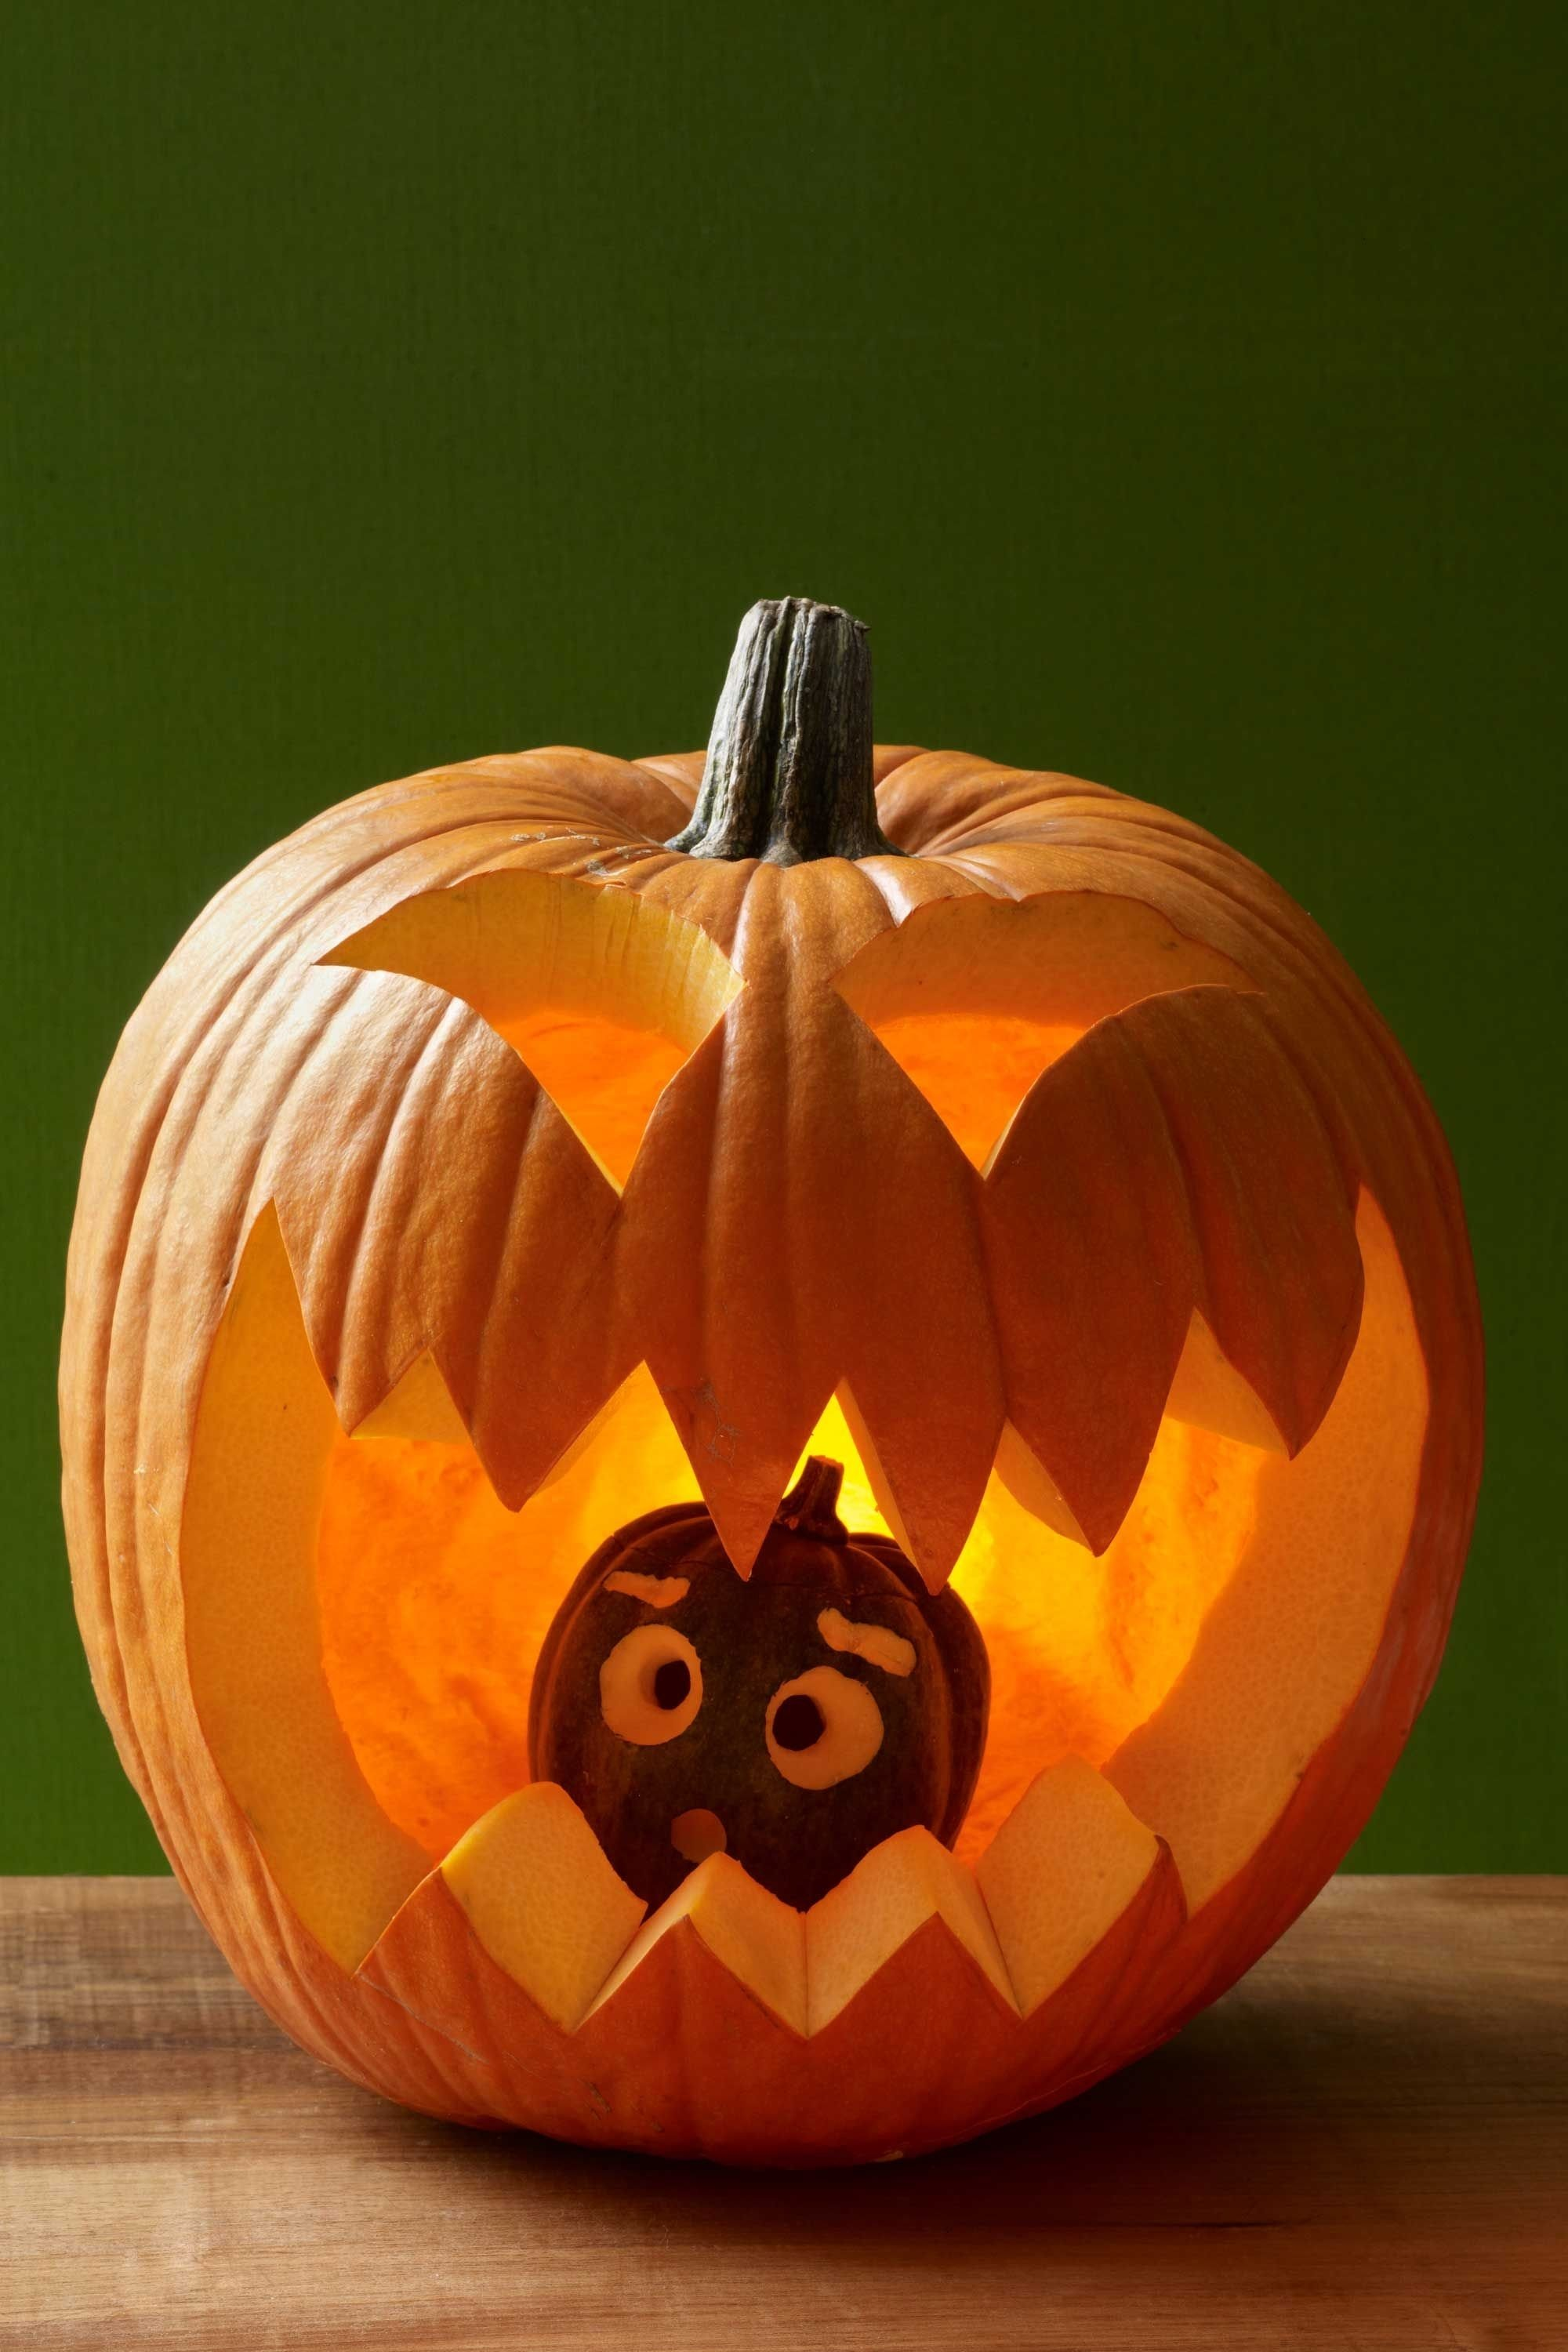 10 Best Jack O Lantern Ideas To Carve 65 of the most creative pumpkin carving ideas automne 2020